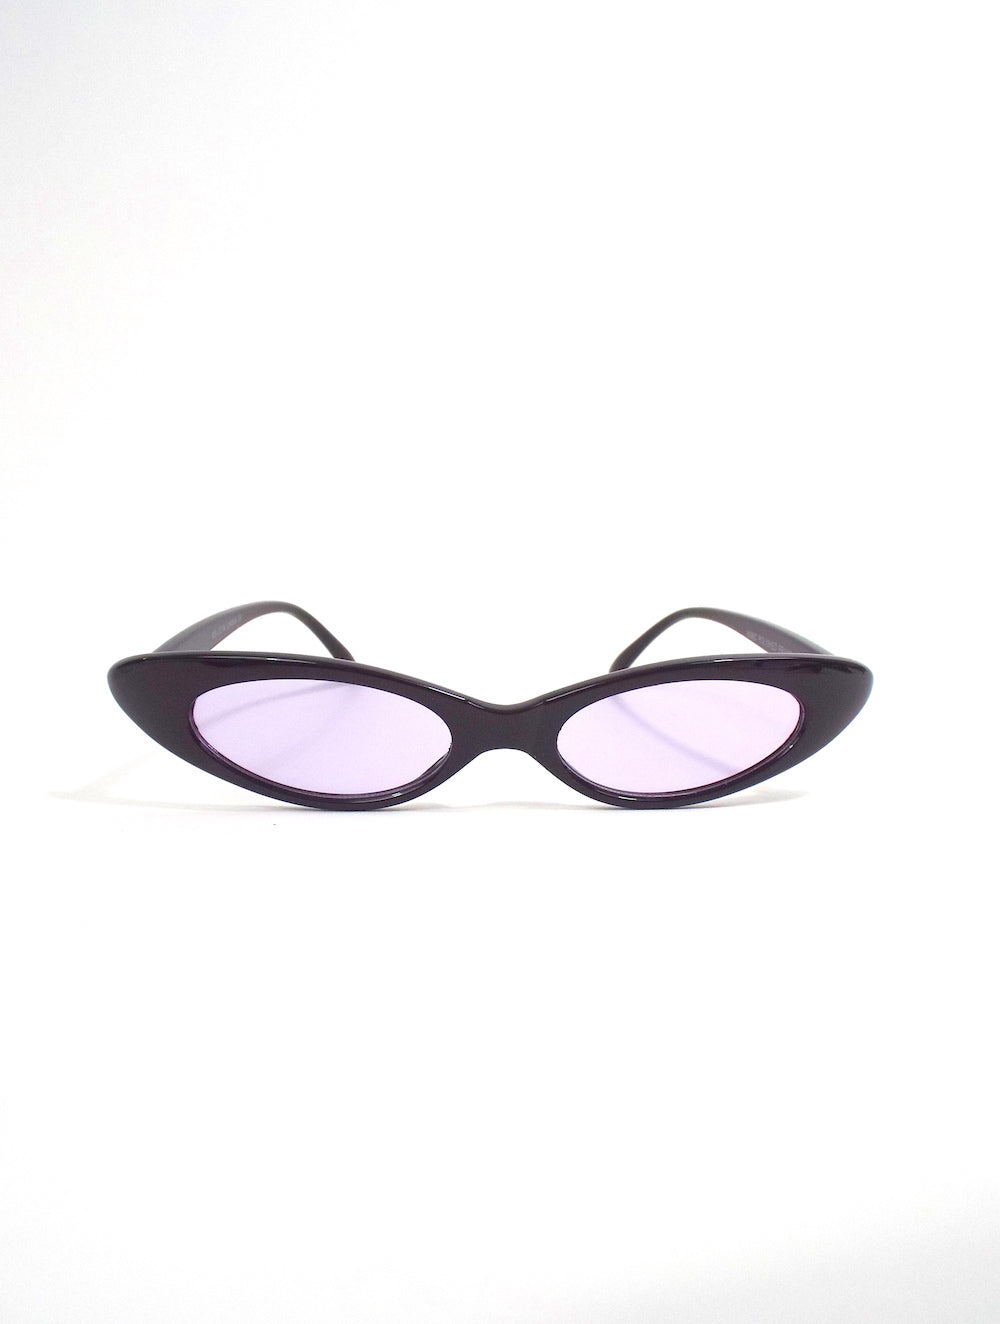 90s Baby Skinny Oval Shaped Sunglasses Purple